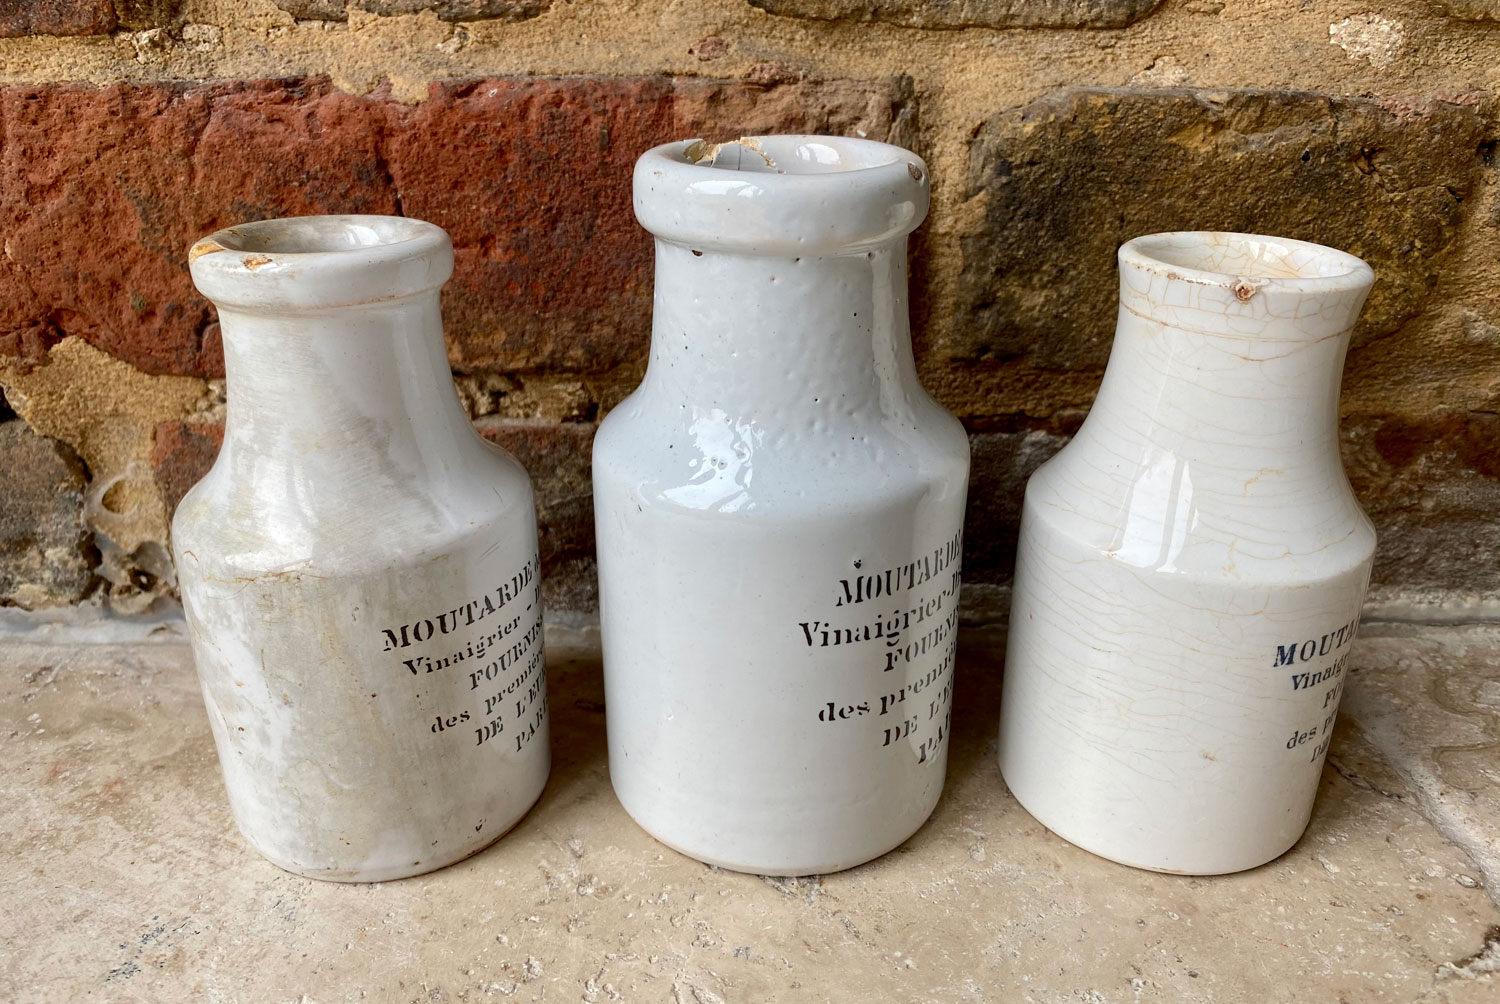 antique white ironstone early 1900s french sarreguemines maille mustard advertising pots